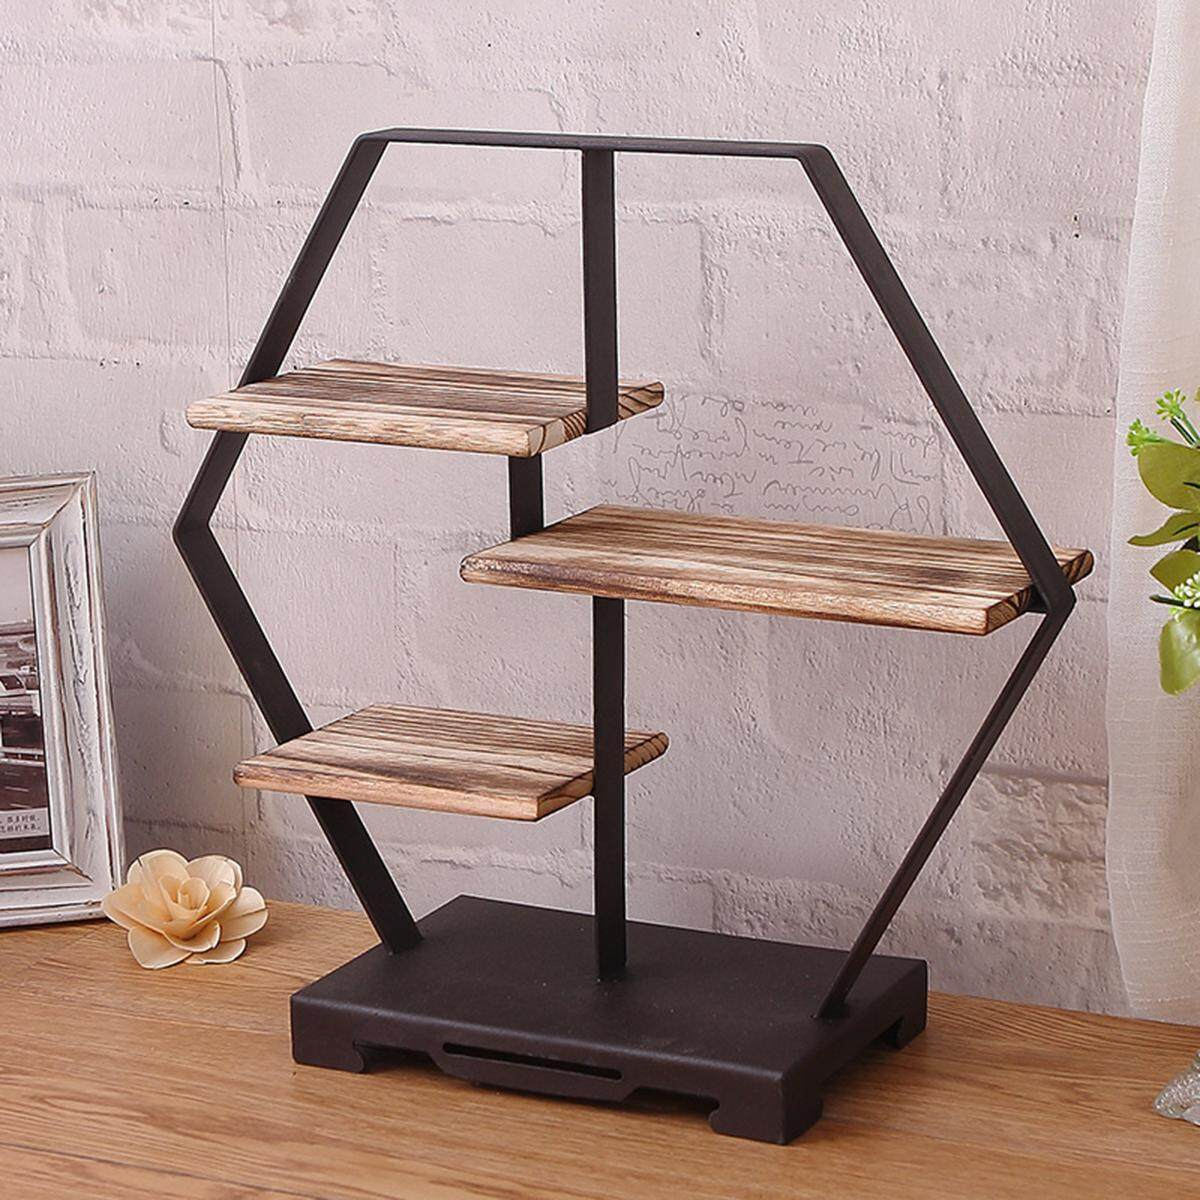 Round Shape Shelf Unit Metal Wire & wood Industrial Style Storage Rack Home New